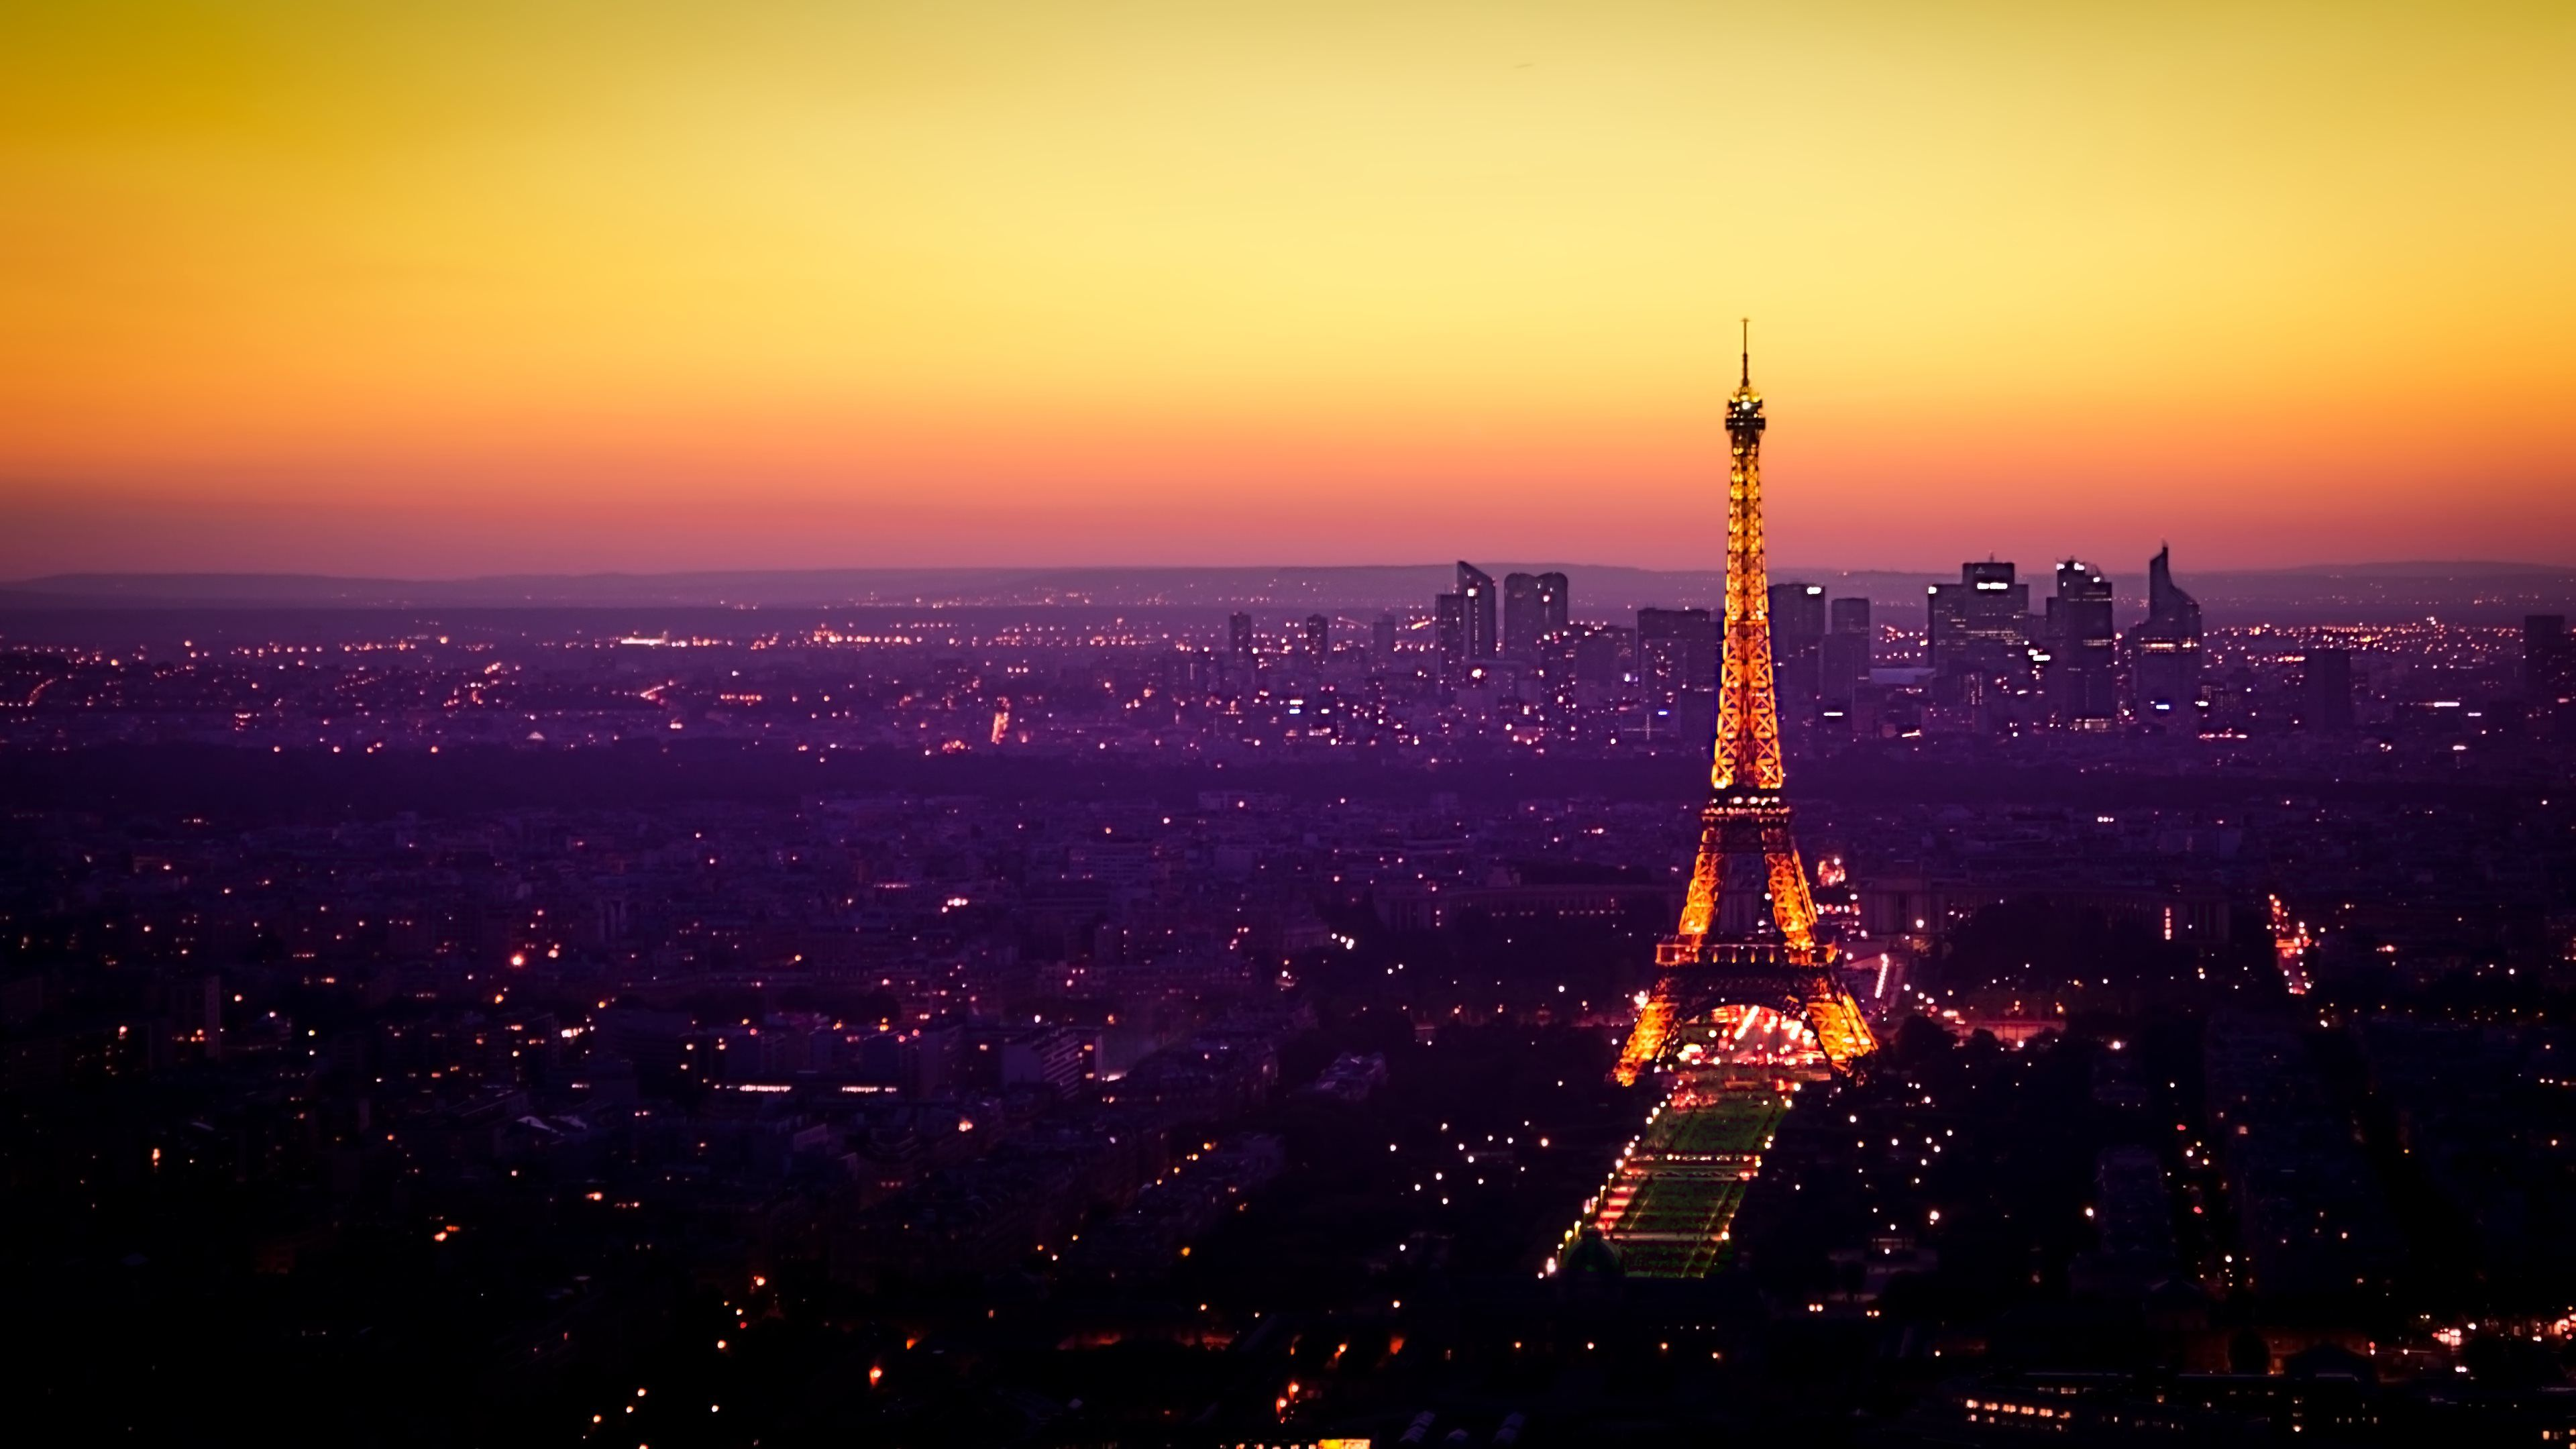 Paris Ultra High Resolution Wallpapers Top Free Paris Ultra High Resolution Backgrounds Wallpaperaccess